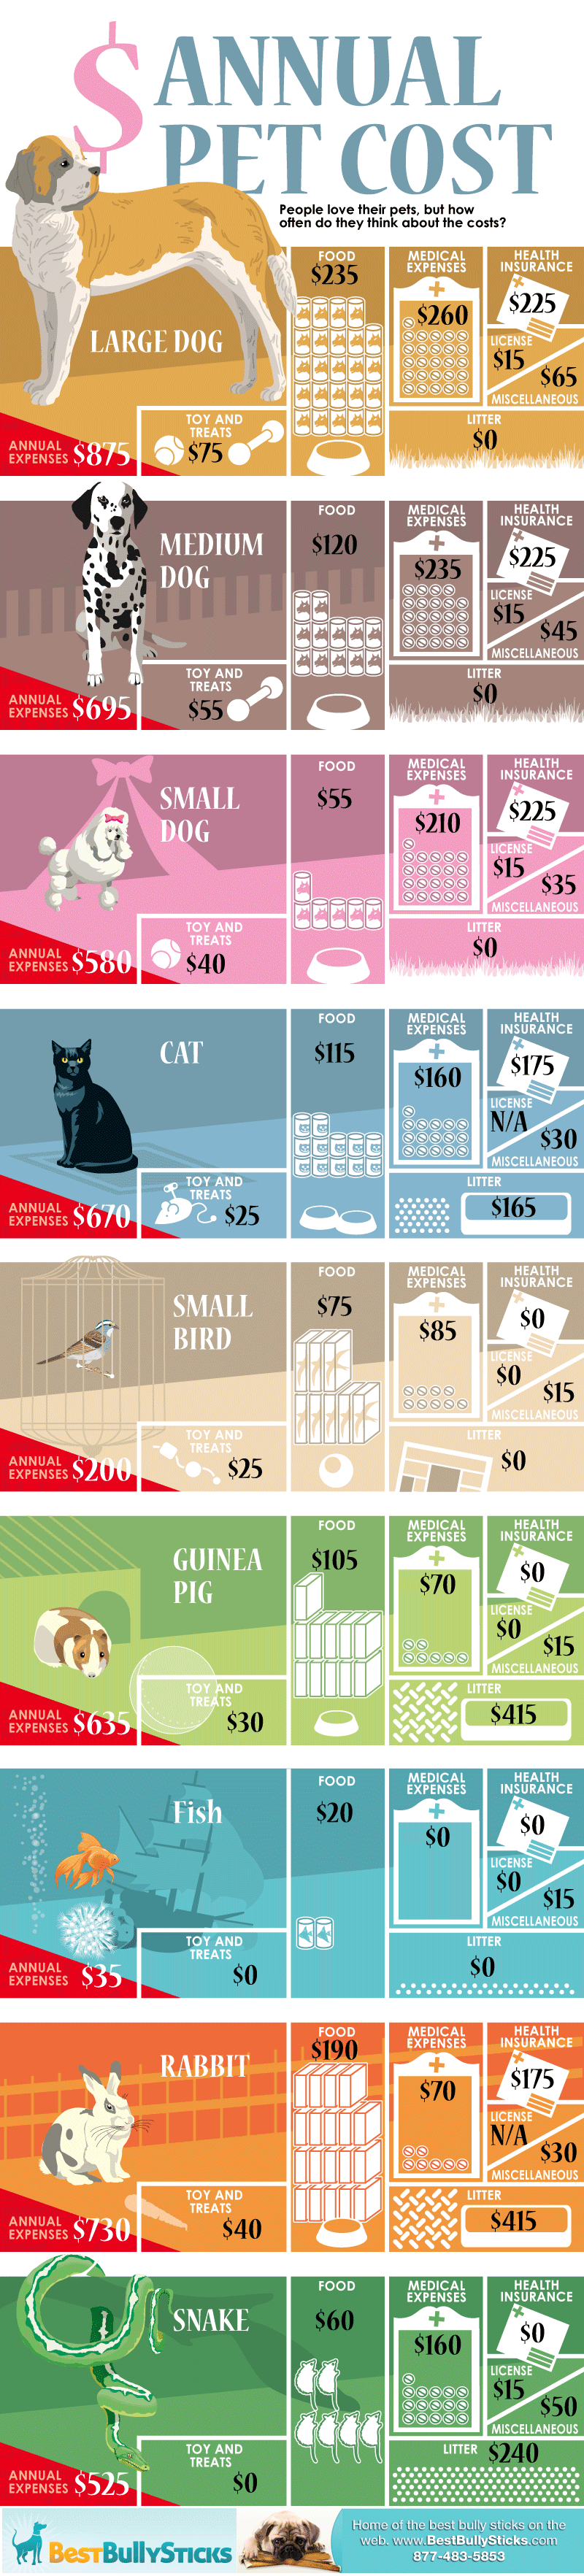 Annual Cost of Pets [Infographic]